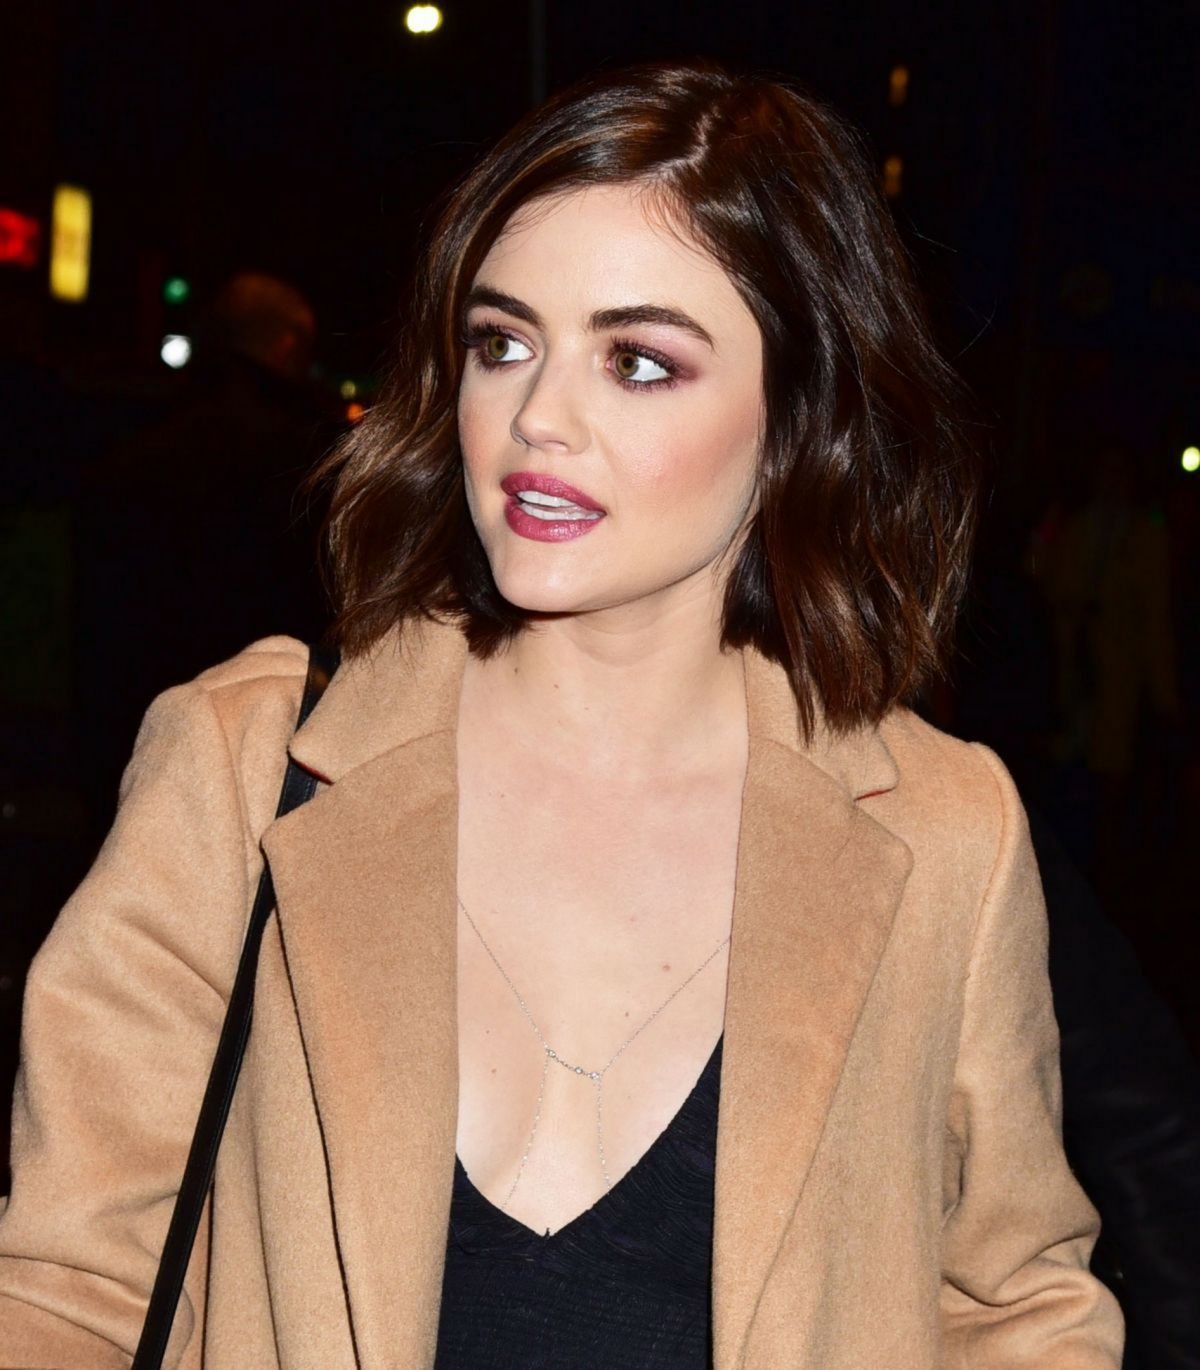 Lucy Hale At Her Hotel In New York